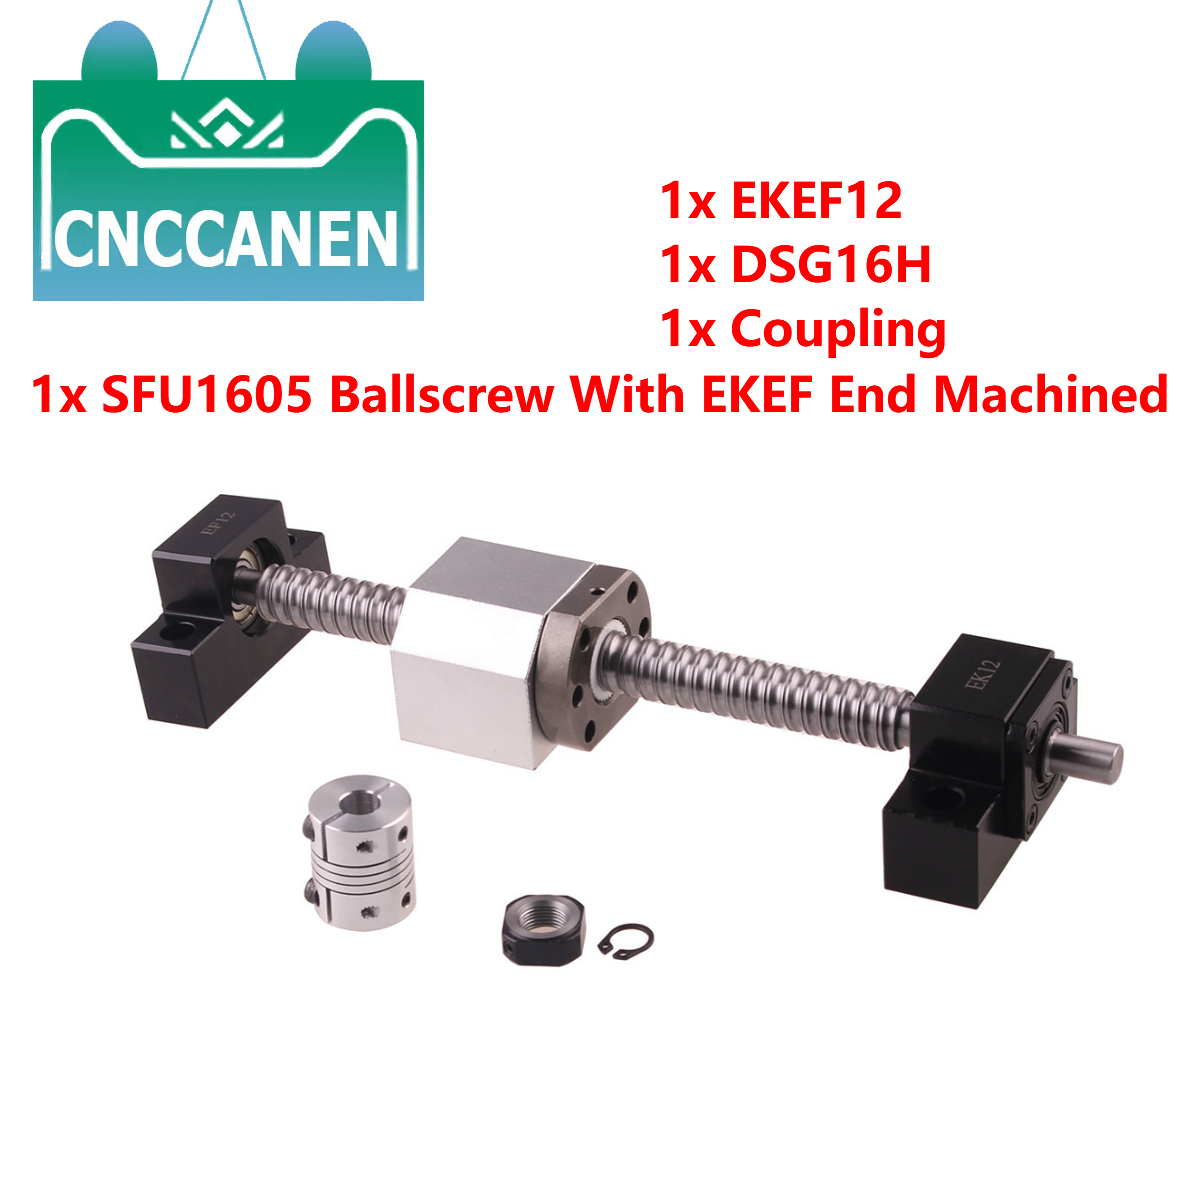 Ballscrew SFU1605-150~2500MM Rolled Ball Screw C7 With EK/EF12 End Machined+1605 Ball Nut+Nut Housing+EKEF12 End Support+Coupler